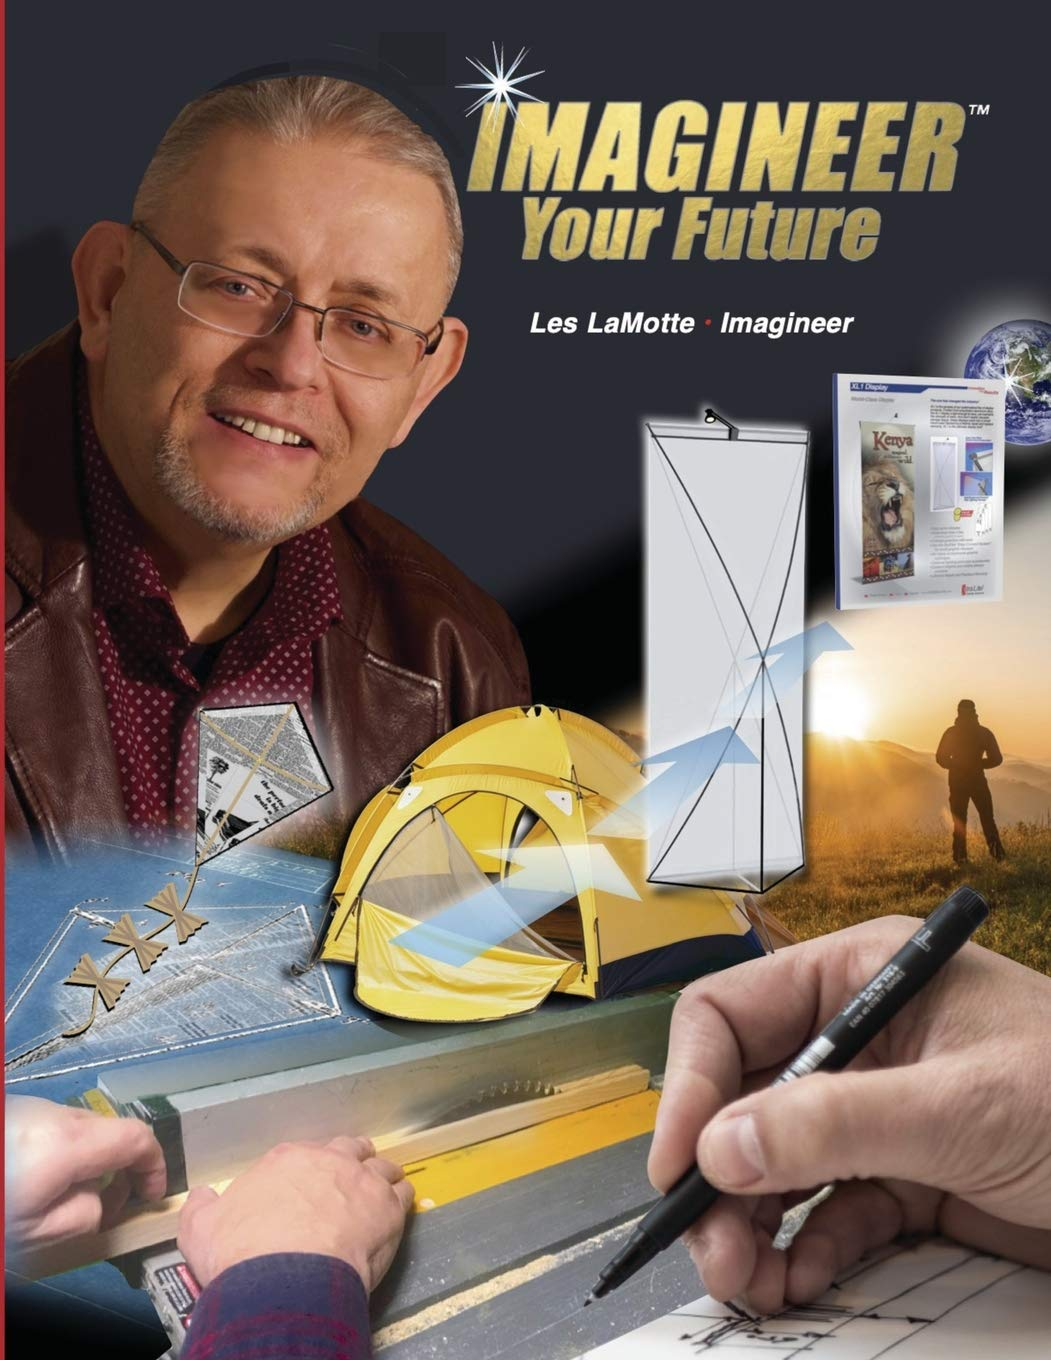 'Imagineer Your Future: Discover Your Core Passions' by Les LaMotte Reveals the Journey of Being an Imagineer